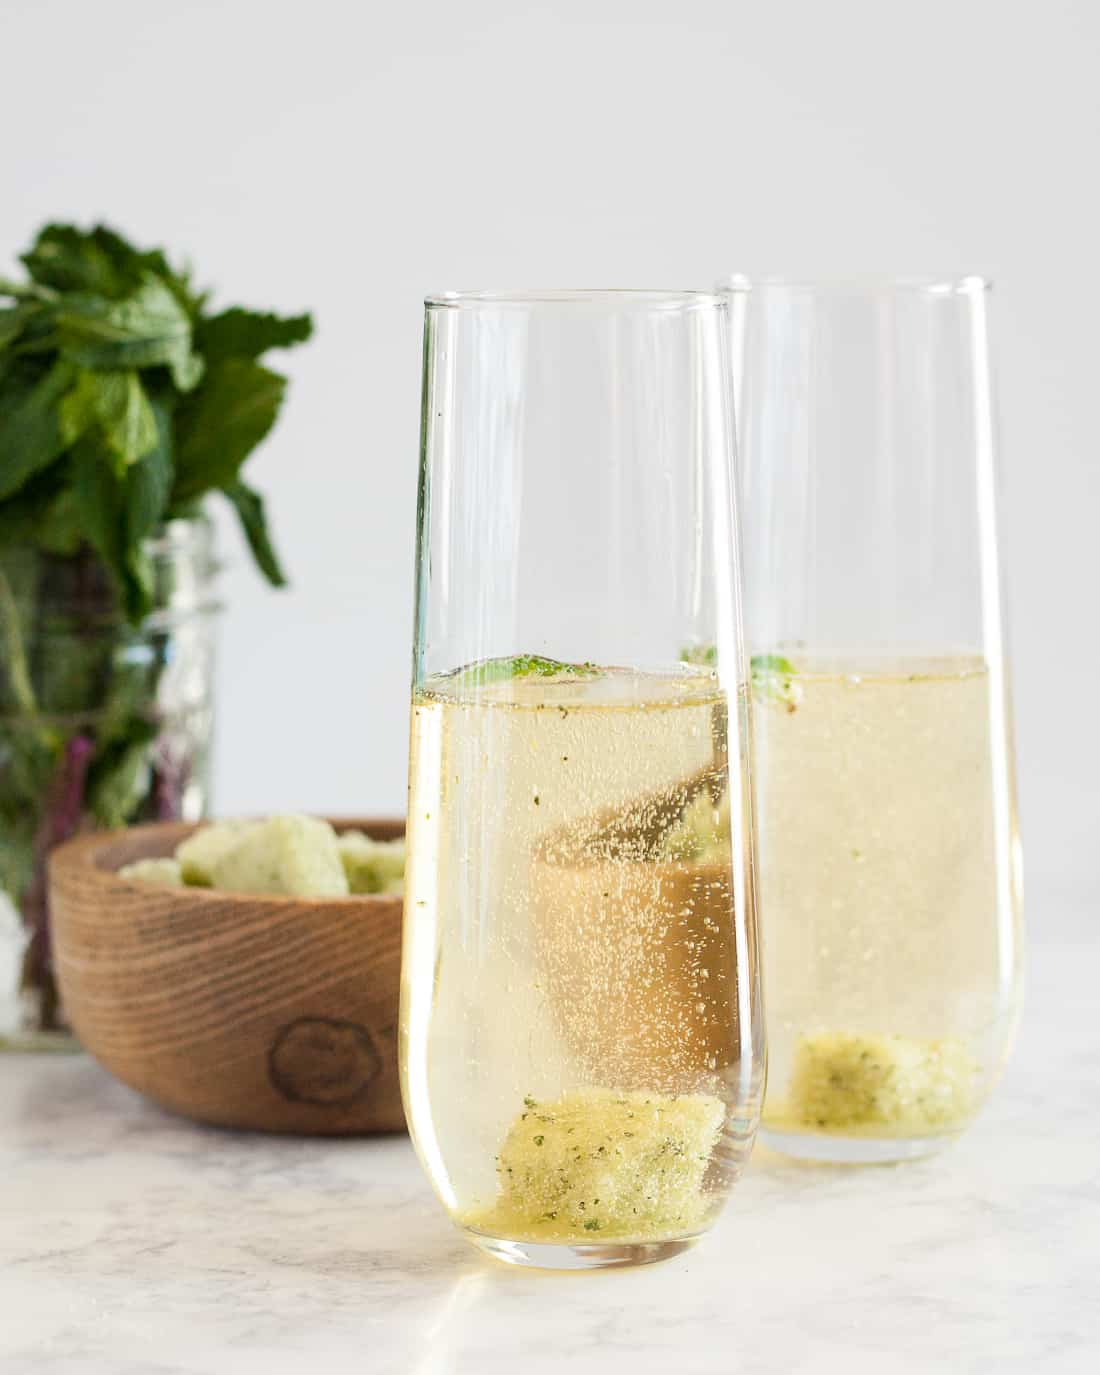 Whether you make it as a cocktail or a mocktail, this sparkling mint julep is a lovely drink for a celebration! Large hats optional. * Recipe on GoodieGodmother.com